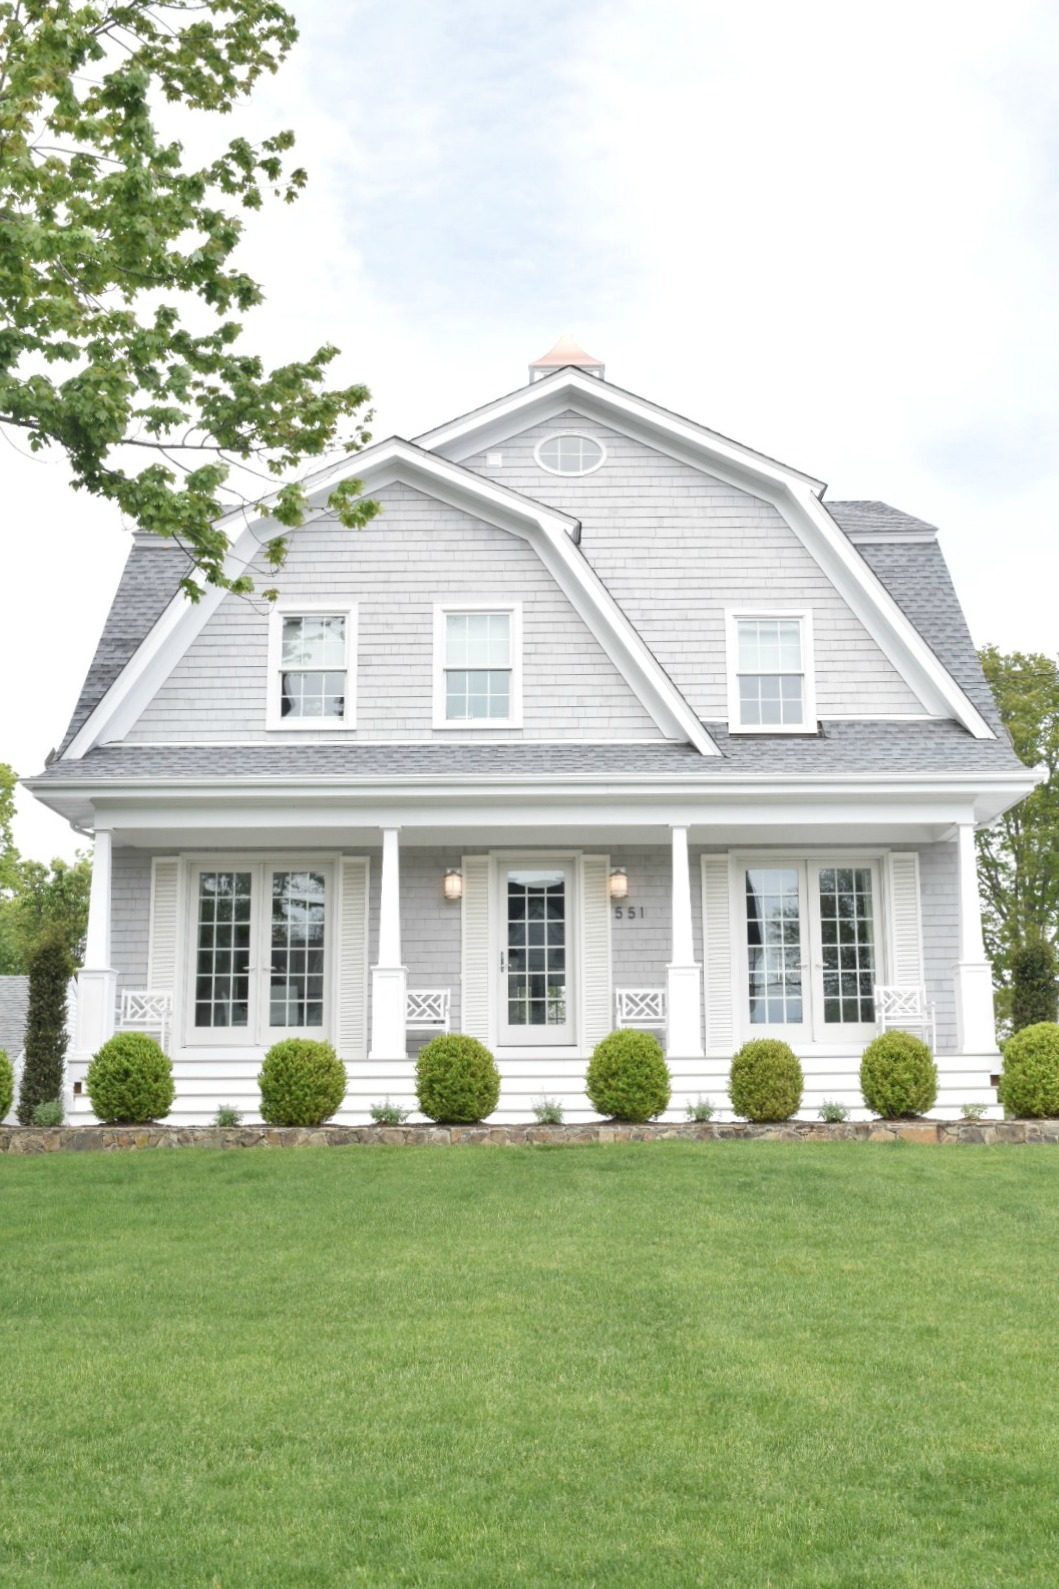 For Painting Exterior Paint Color : New england homes exterior paint color ideas nesting